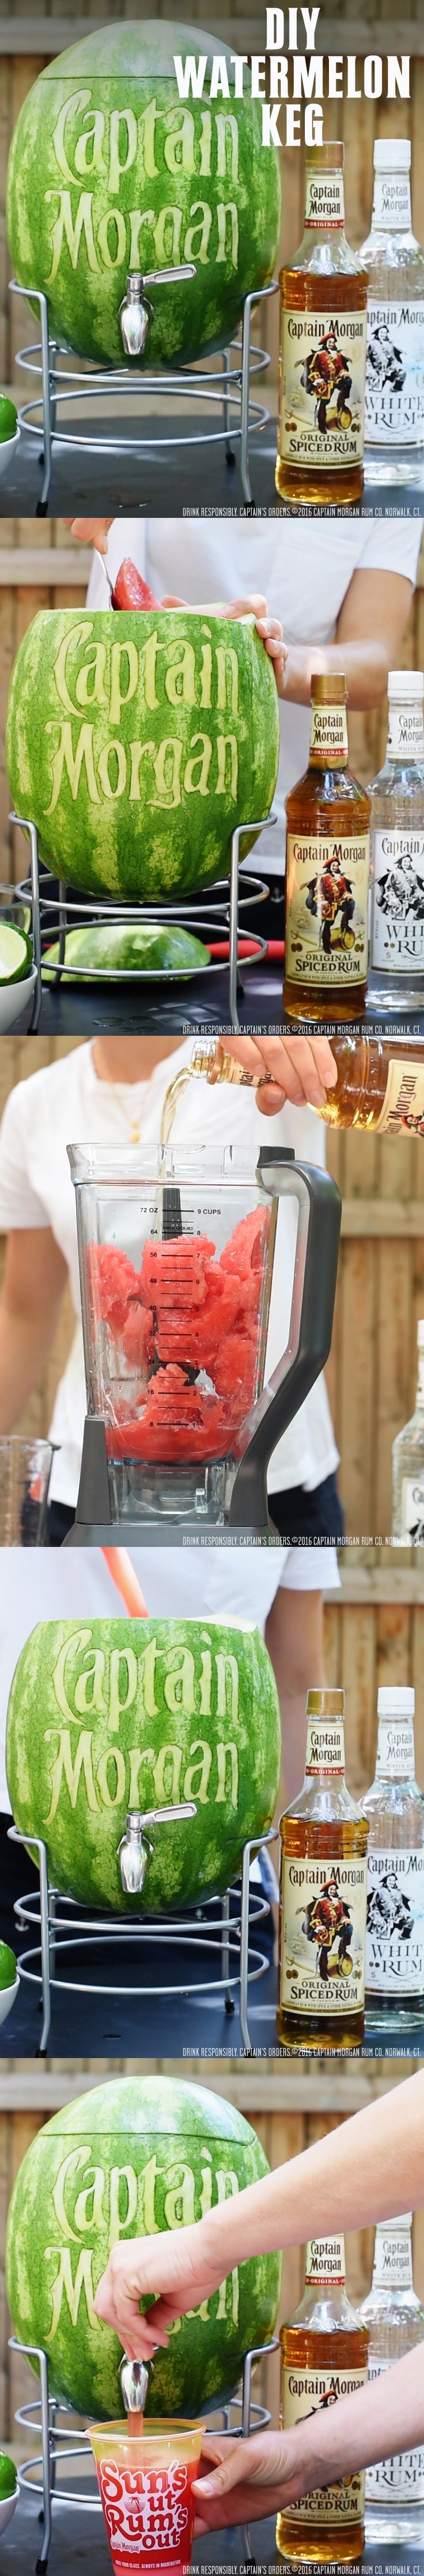 To ensure fruit is a crucial part of a balanced Summer, try marking your own Captain Morgan watermelon keg: 1.5 oz Captain Morgan Original Spiced Rum 3 oz Watermelon juice 0.5 oz lime juice 0.5 oz sugar syrup Get more summer rum recipes at https://us.captainmorgan.com/rum-cocktails/?utm_source=pinterest&utm_medium=social&utm_term=summer&utm_content=watermelon_keg&utm_campaign=recipe